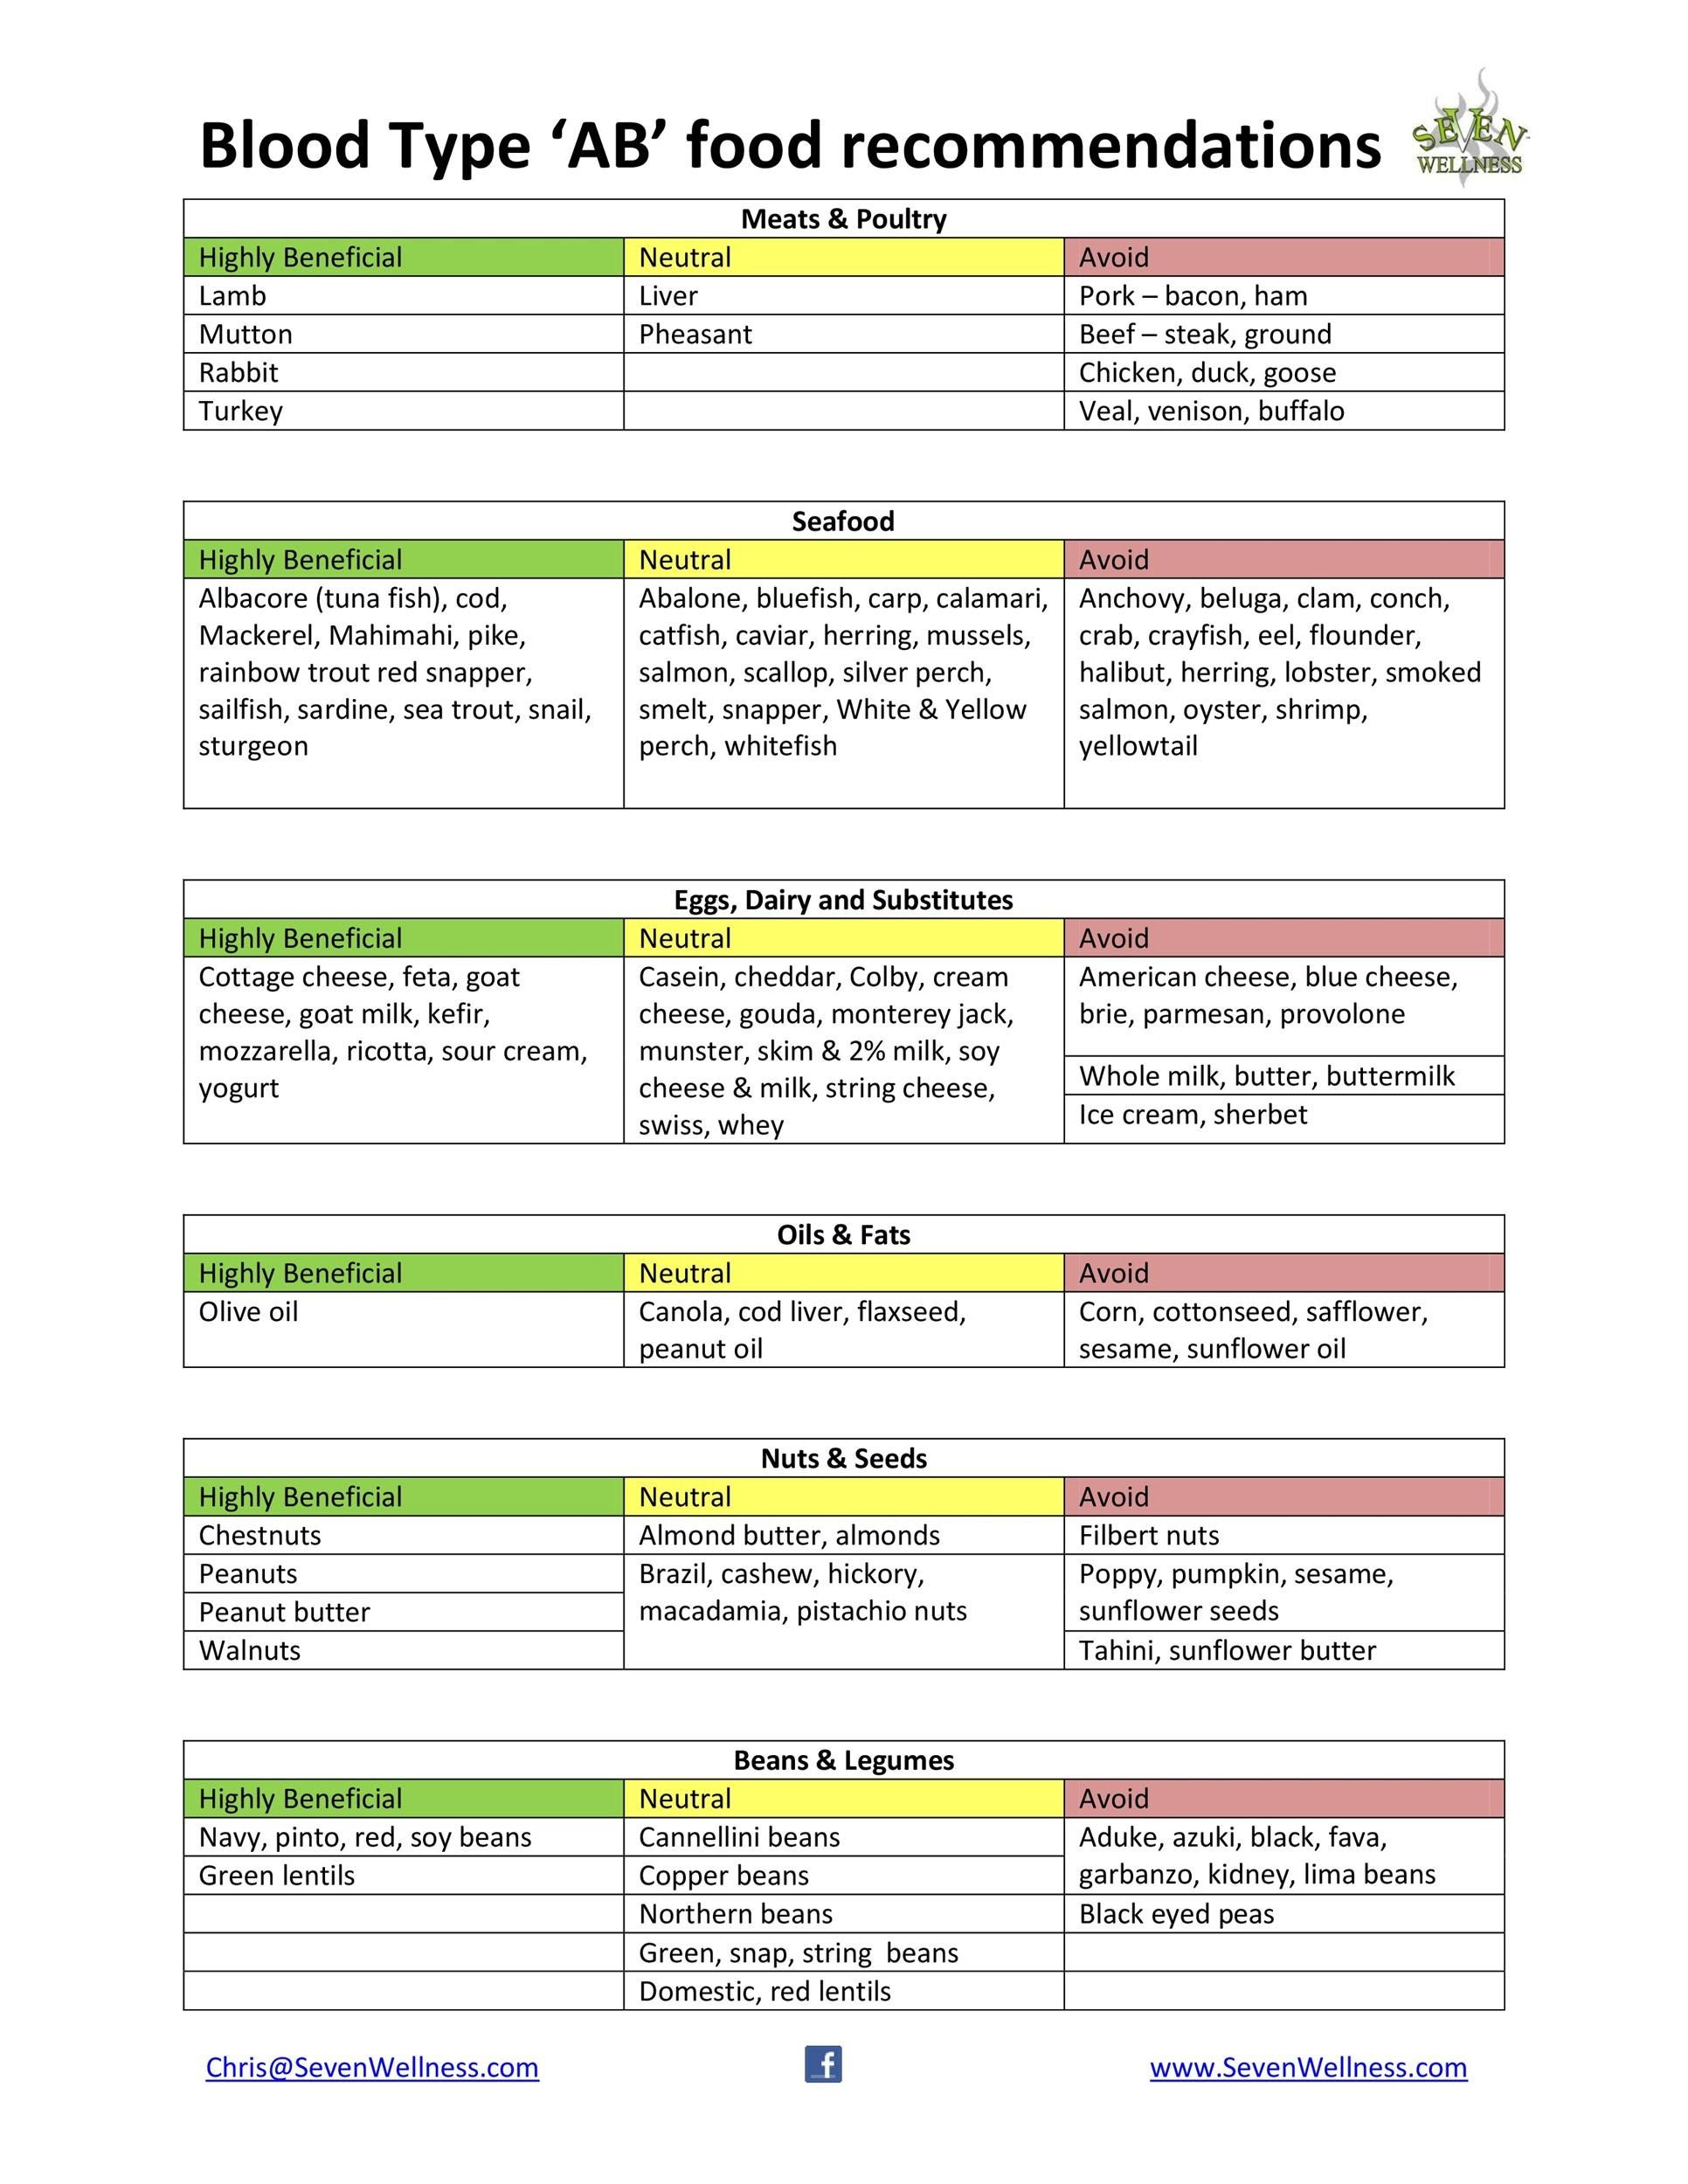 diet for ab blood group